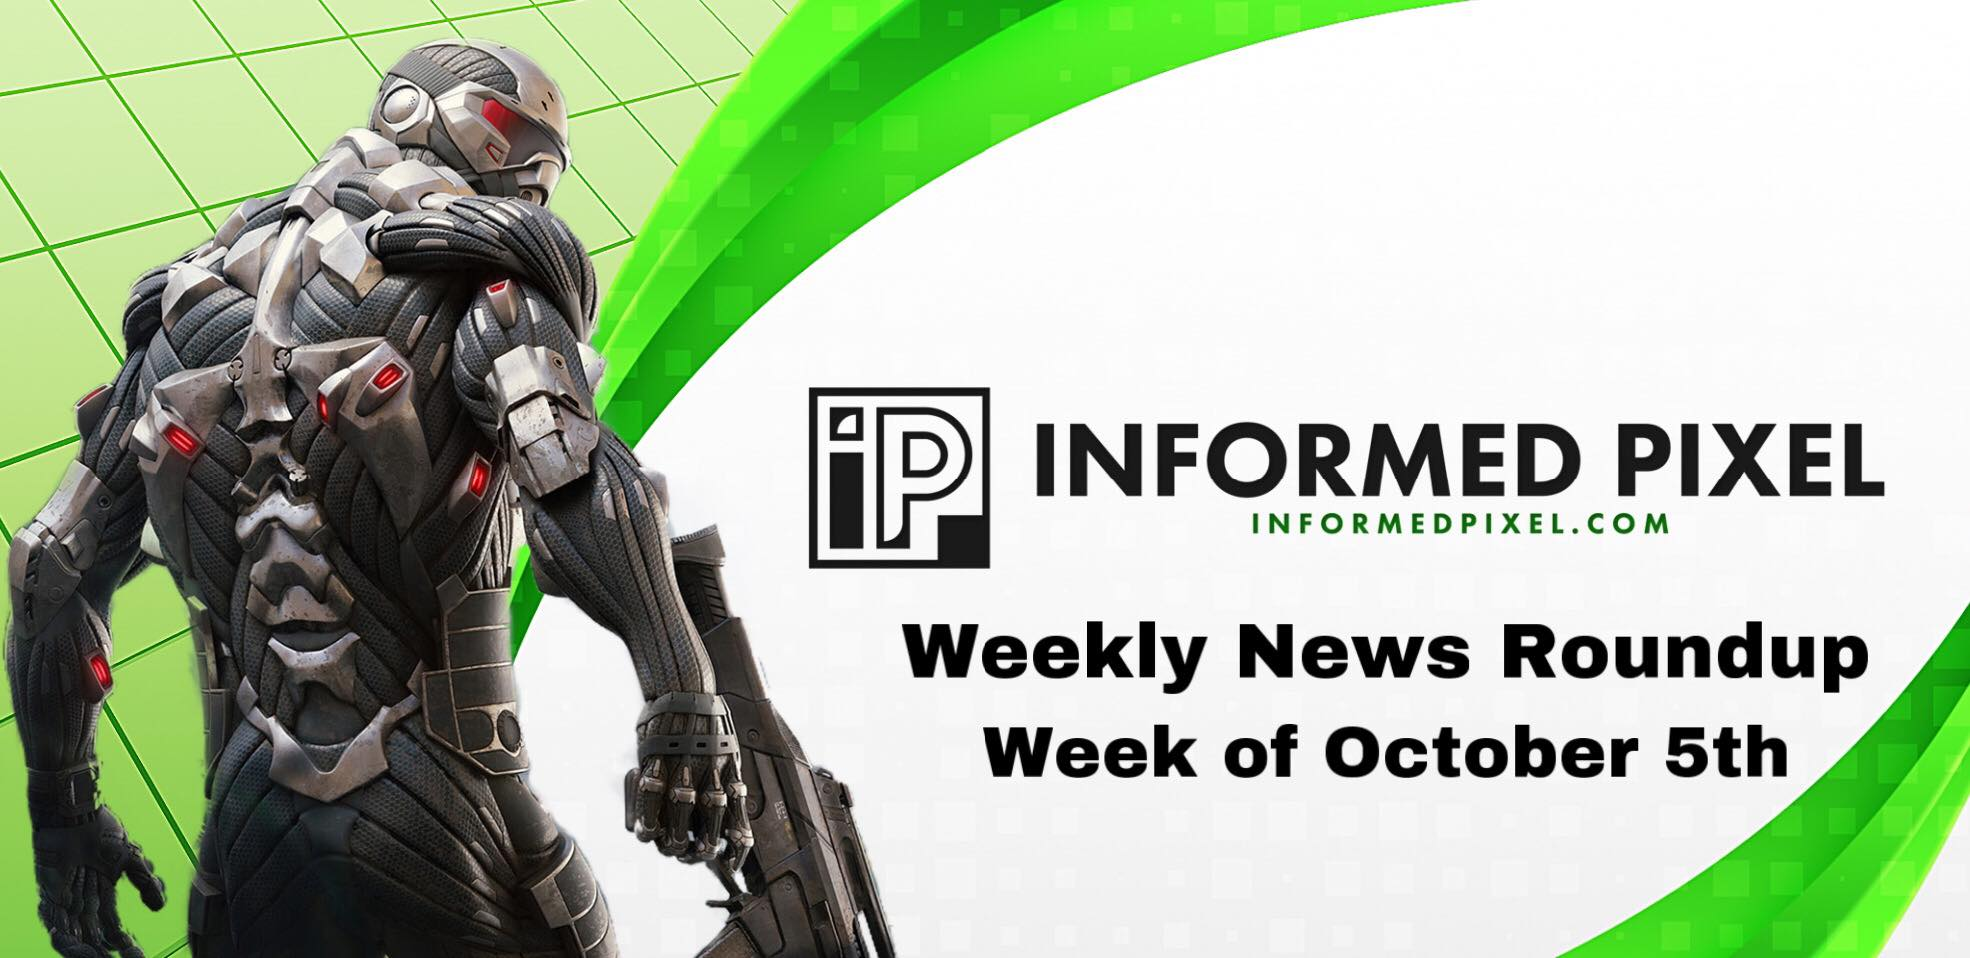 Weekly News Roundup – Week of October 5th